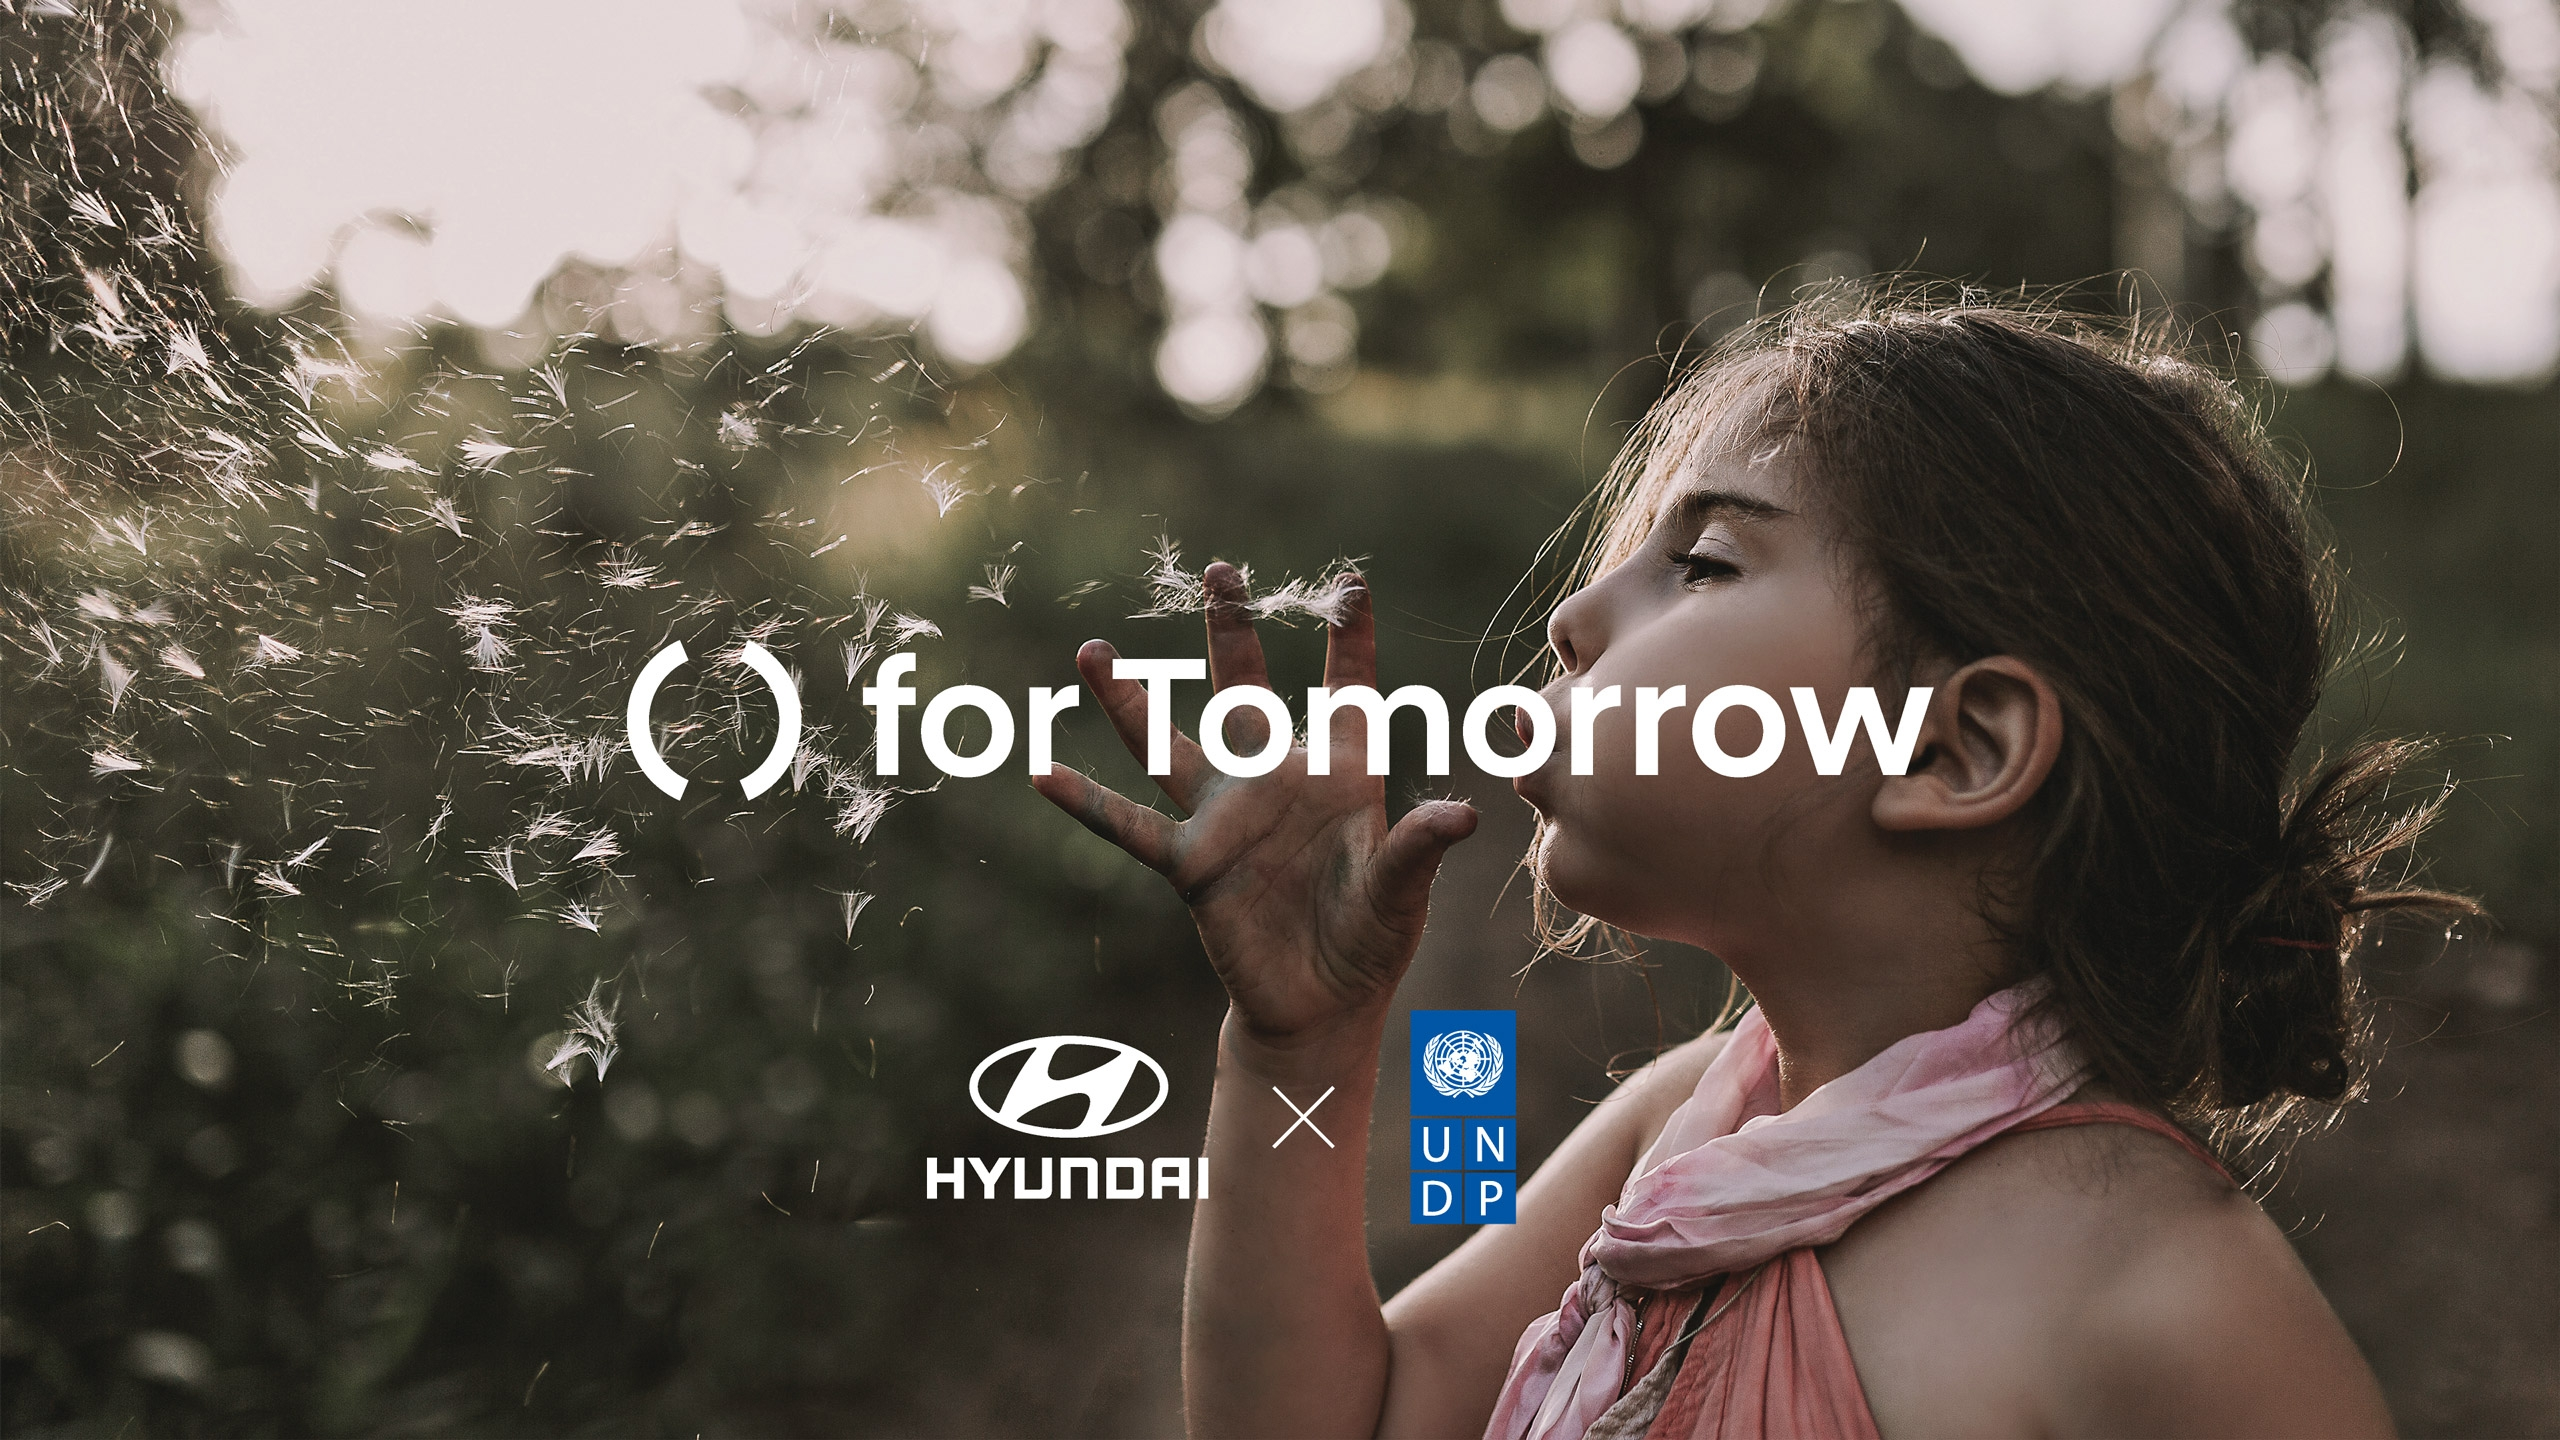 For Tomorrow un proyecto para soluciones sostenibles de Hyundai